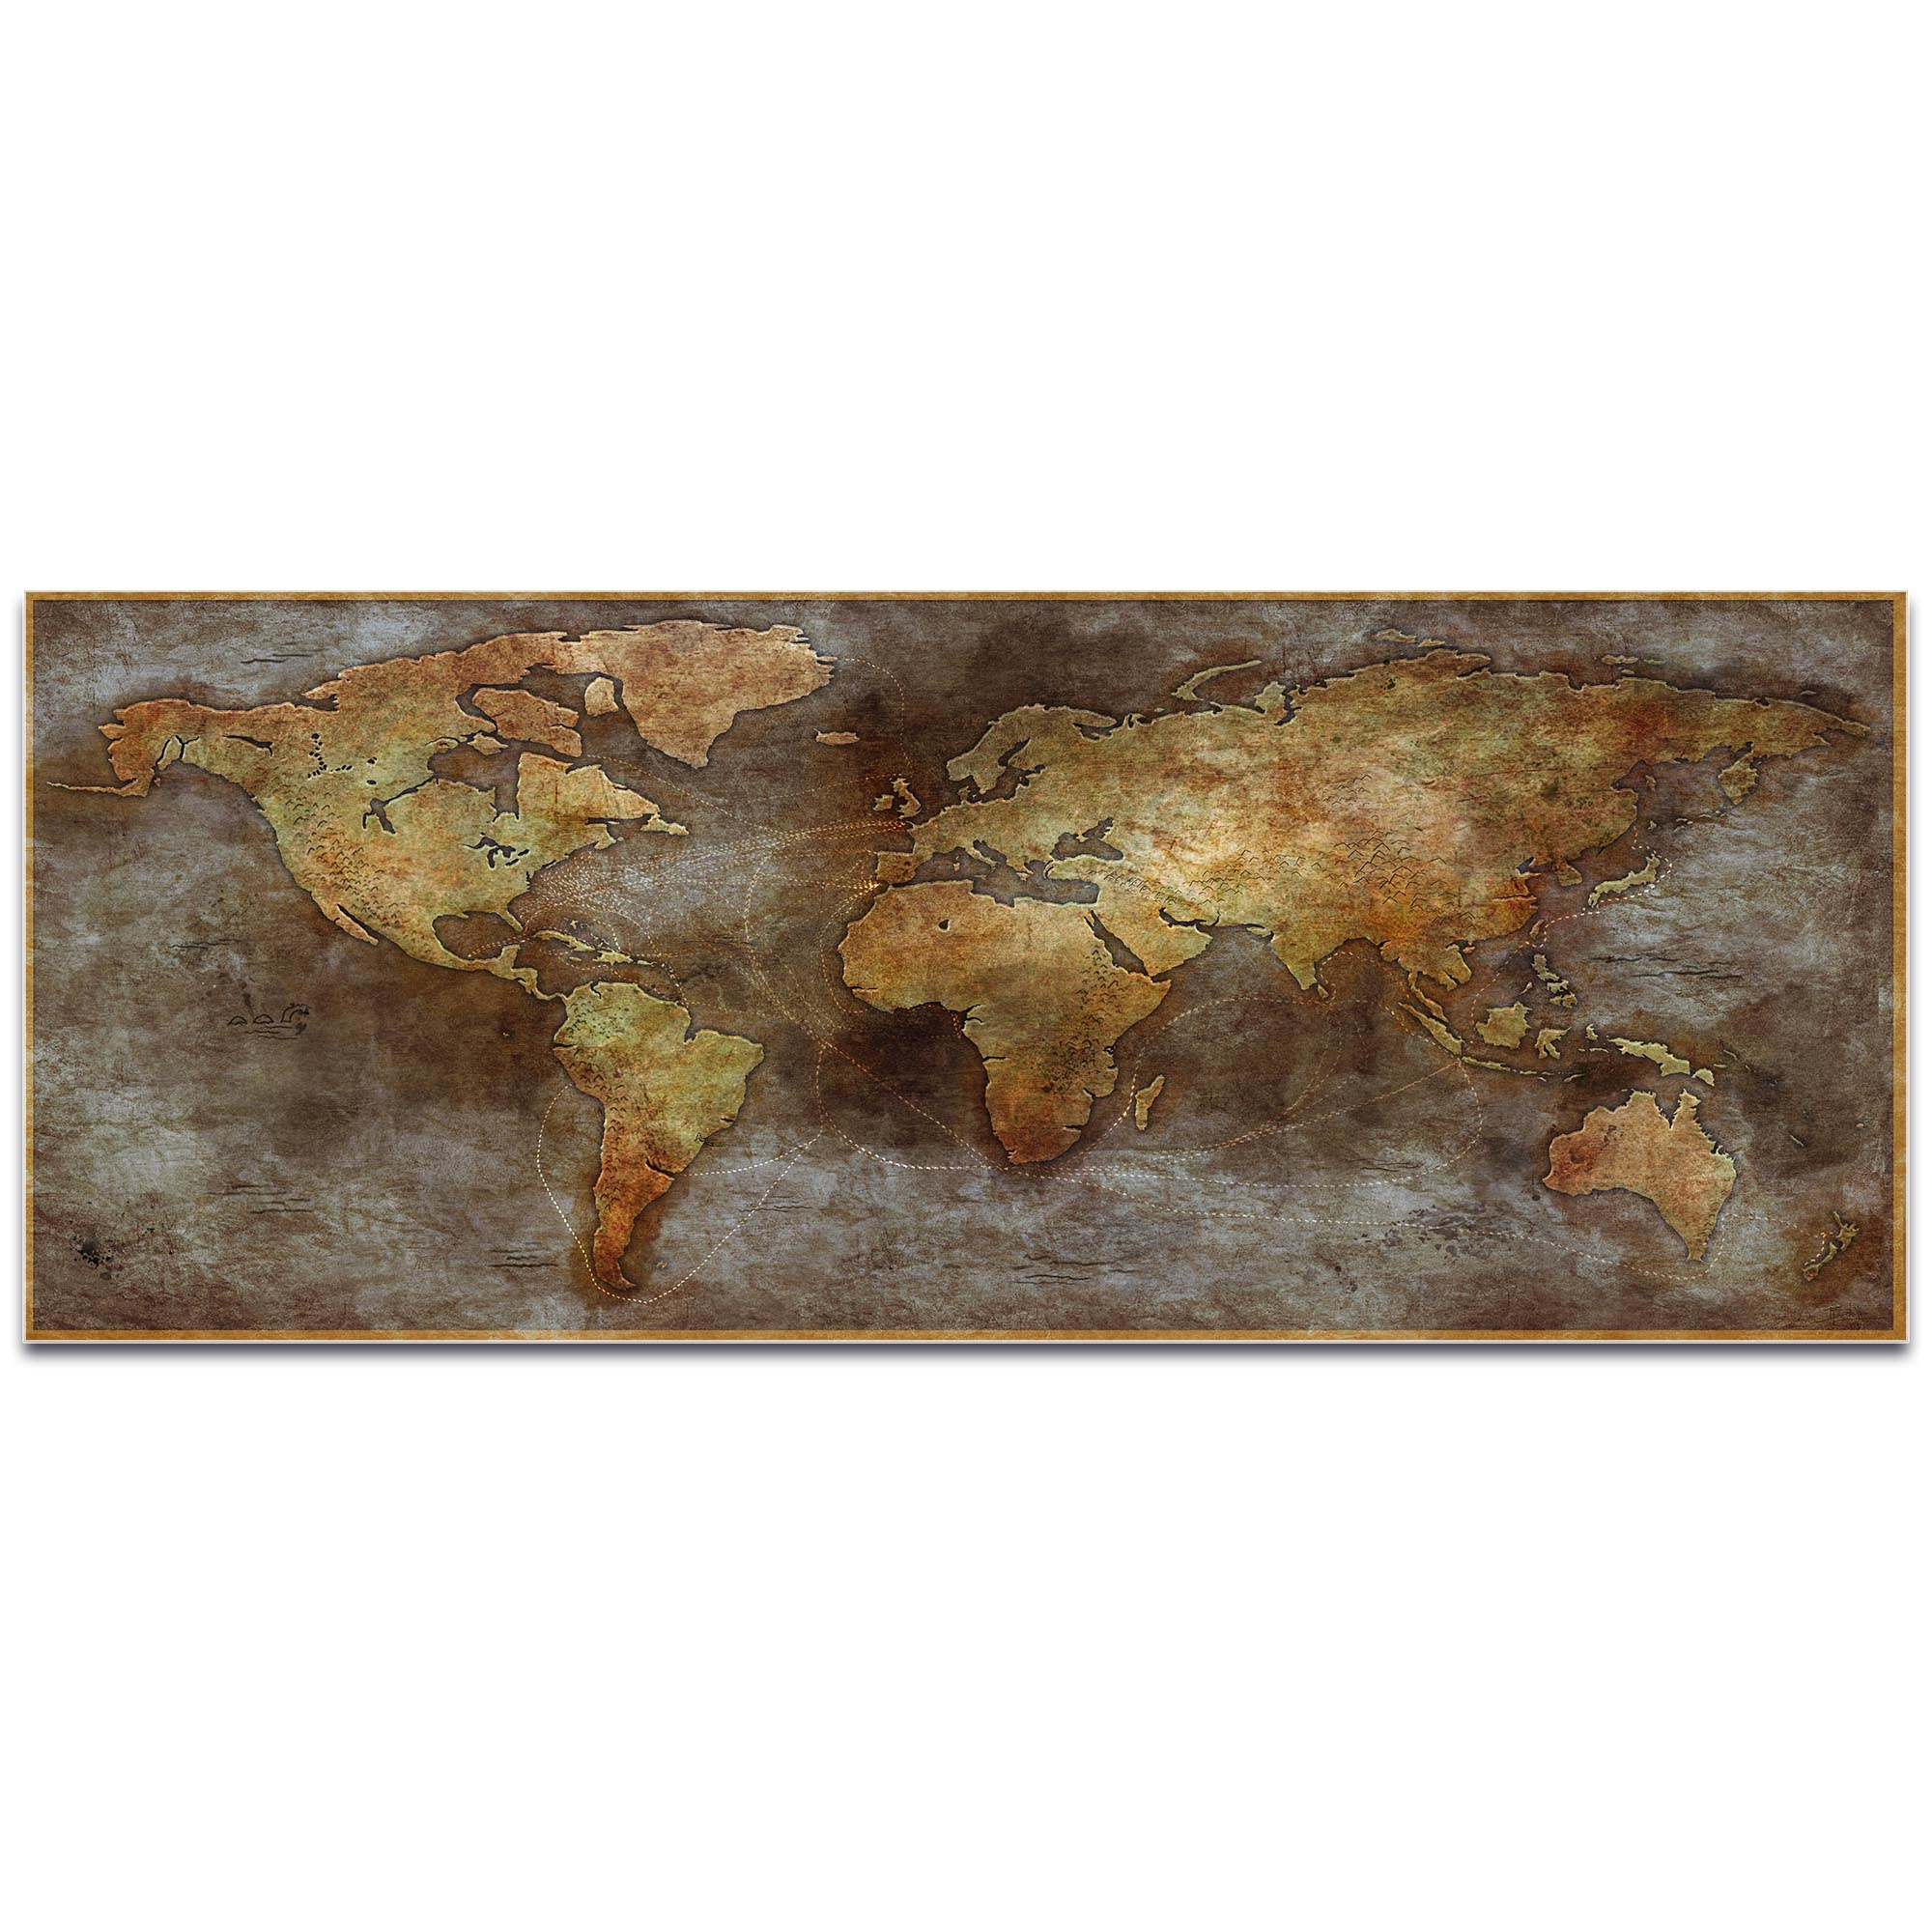 World Map Art '1800s Trade Routes Map' - Old World Wall Decor on Metal or Acrylic - Image 2